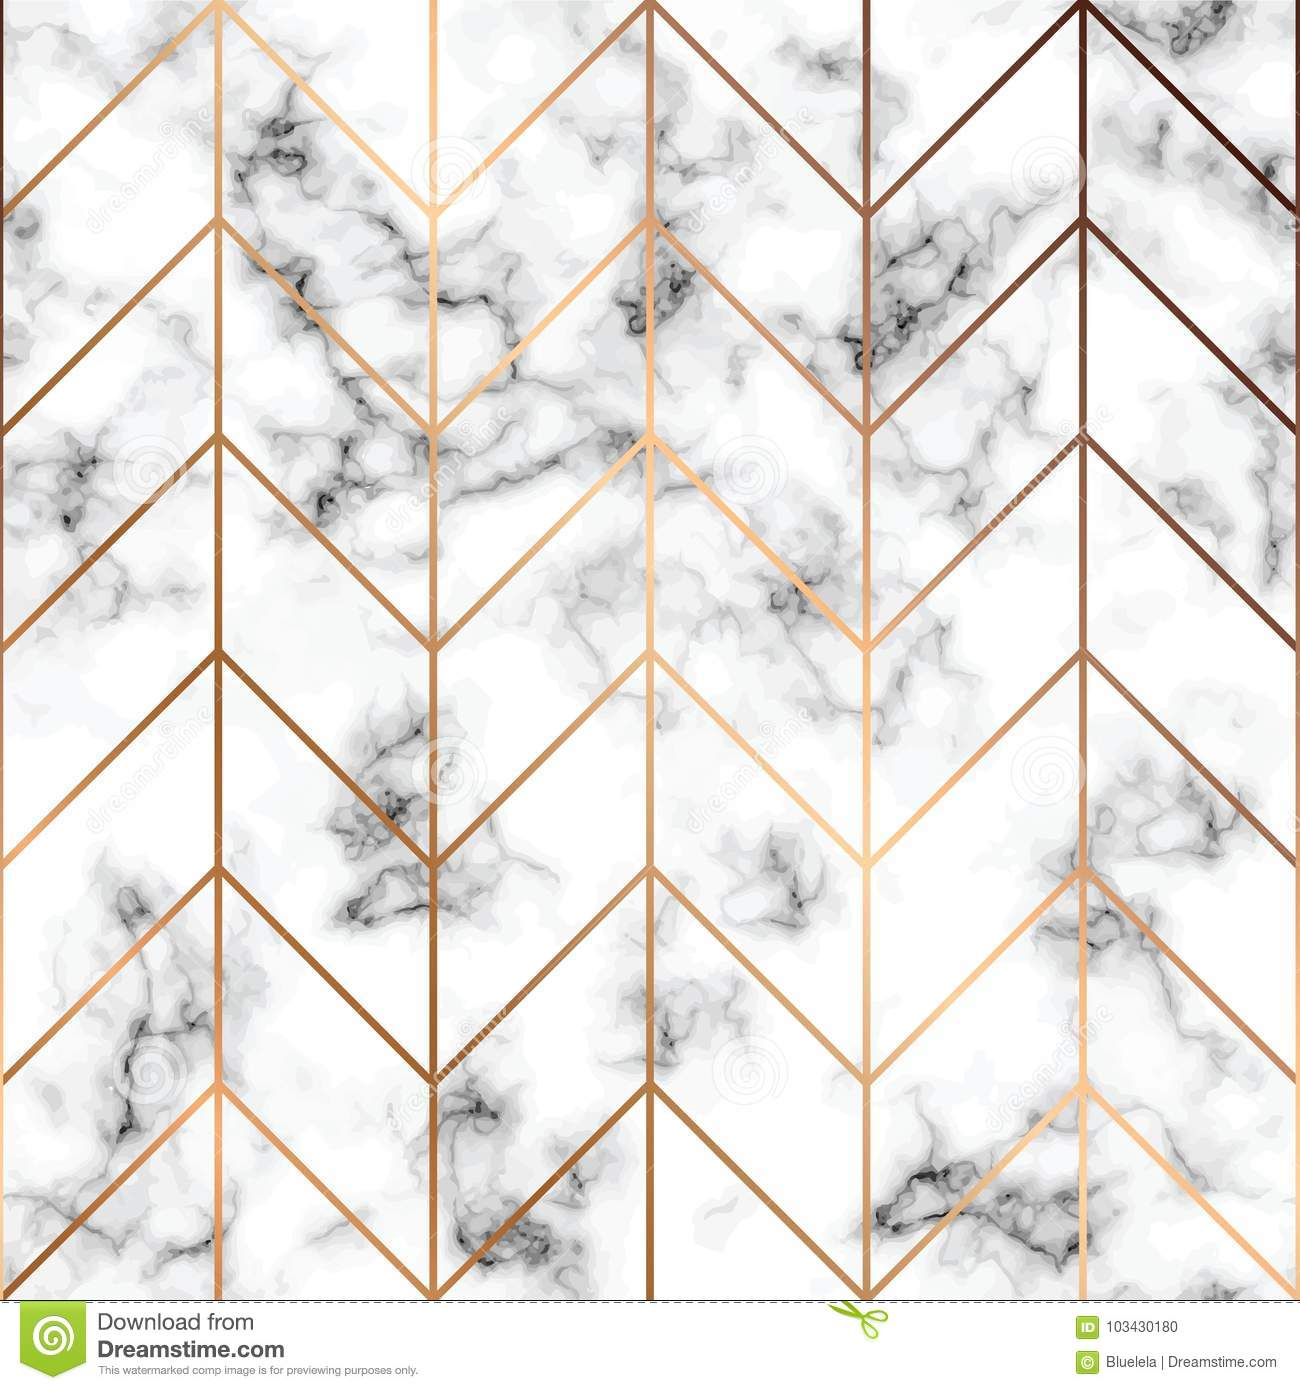 Vector marble texture, seamless pattern design with golden geometric lines, black and white marbling surface, modern luxurious